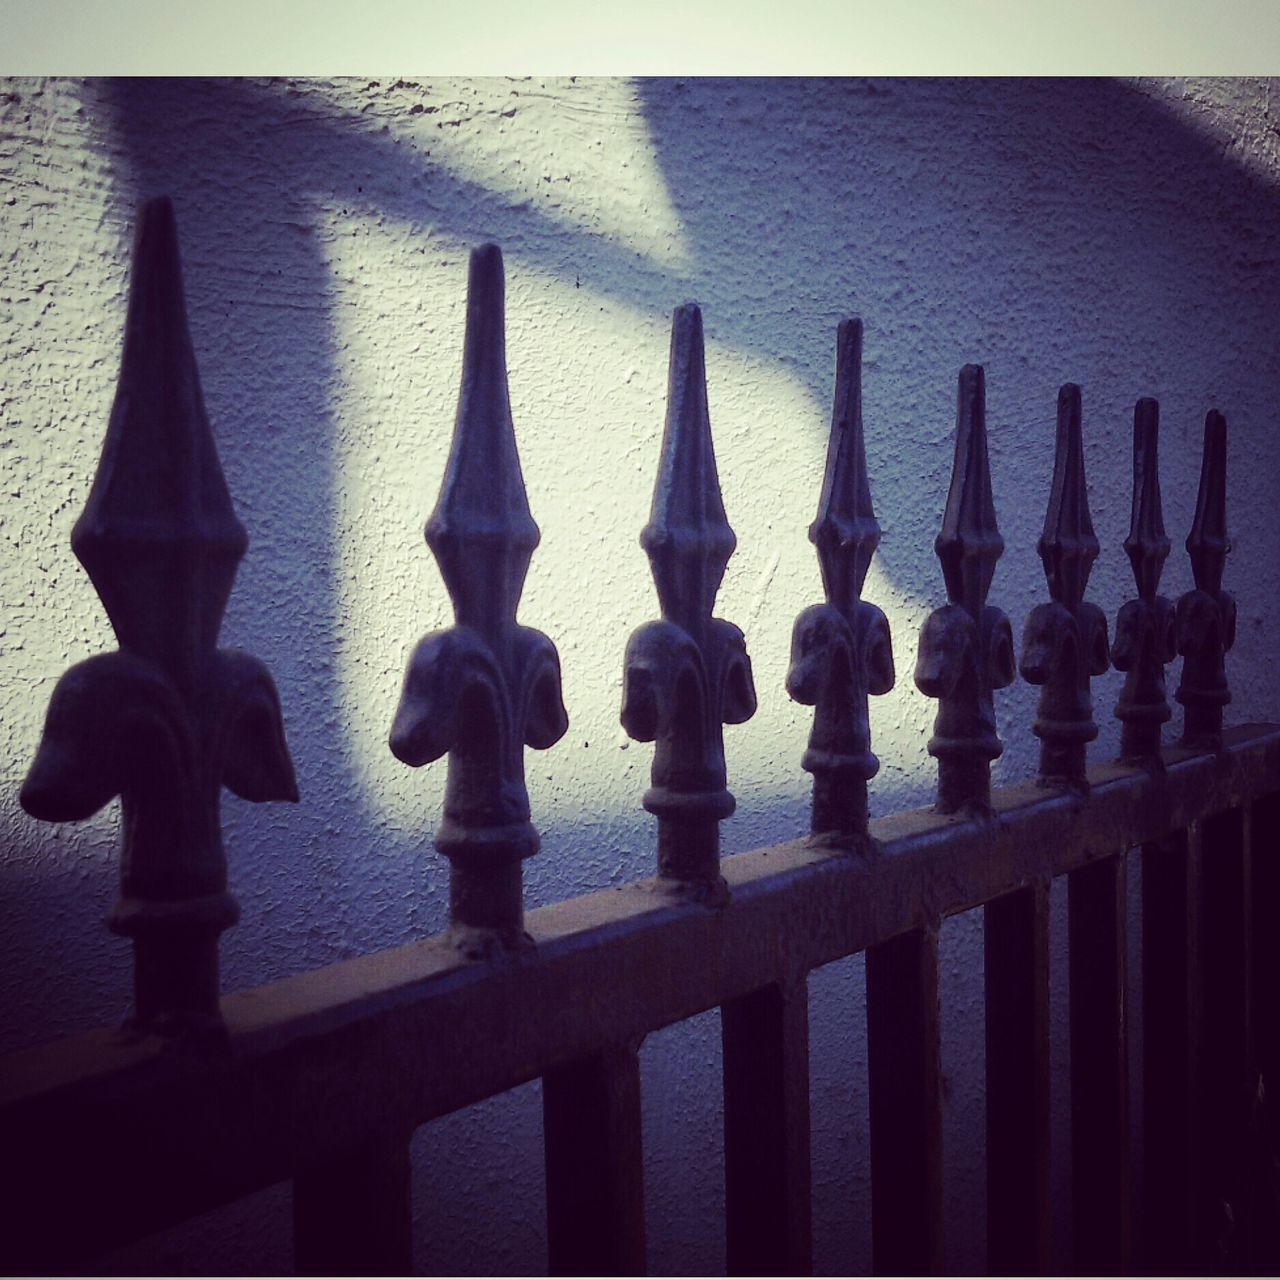 railing, no people, sea, day, outdoors, water, architecture, close-up, chess piece, chess